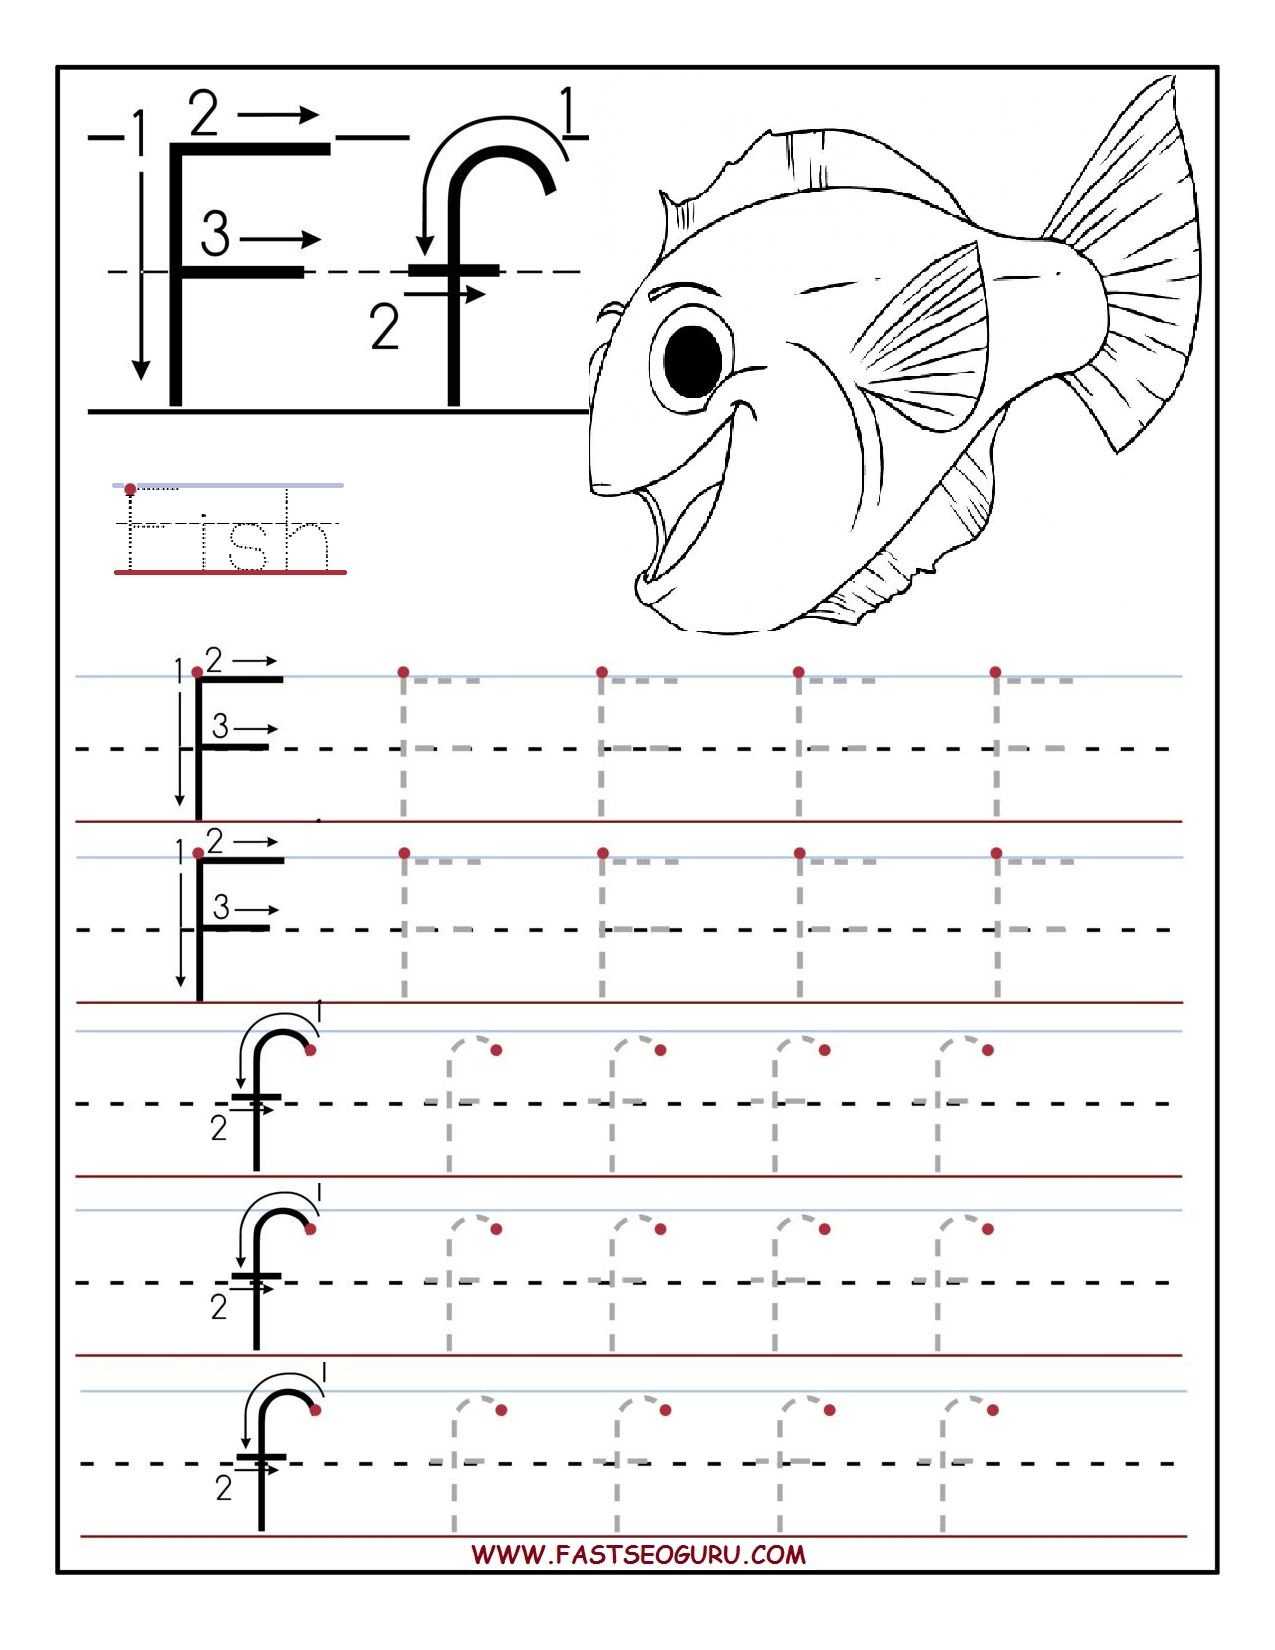 Printable Letter F Tracing Worksheets For Preschool regarding Letter F Worksheets For Kindergarten